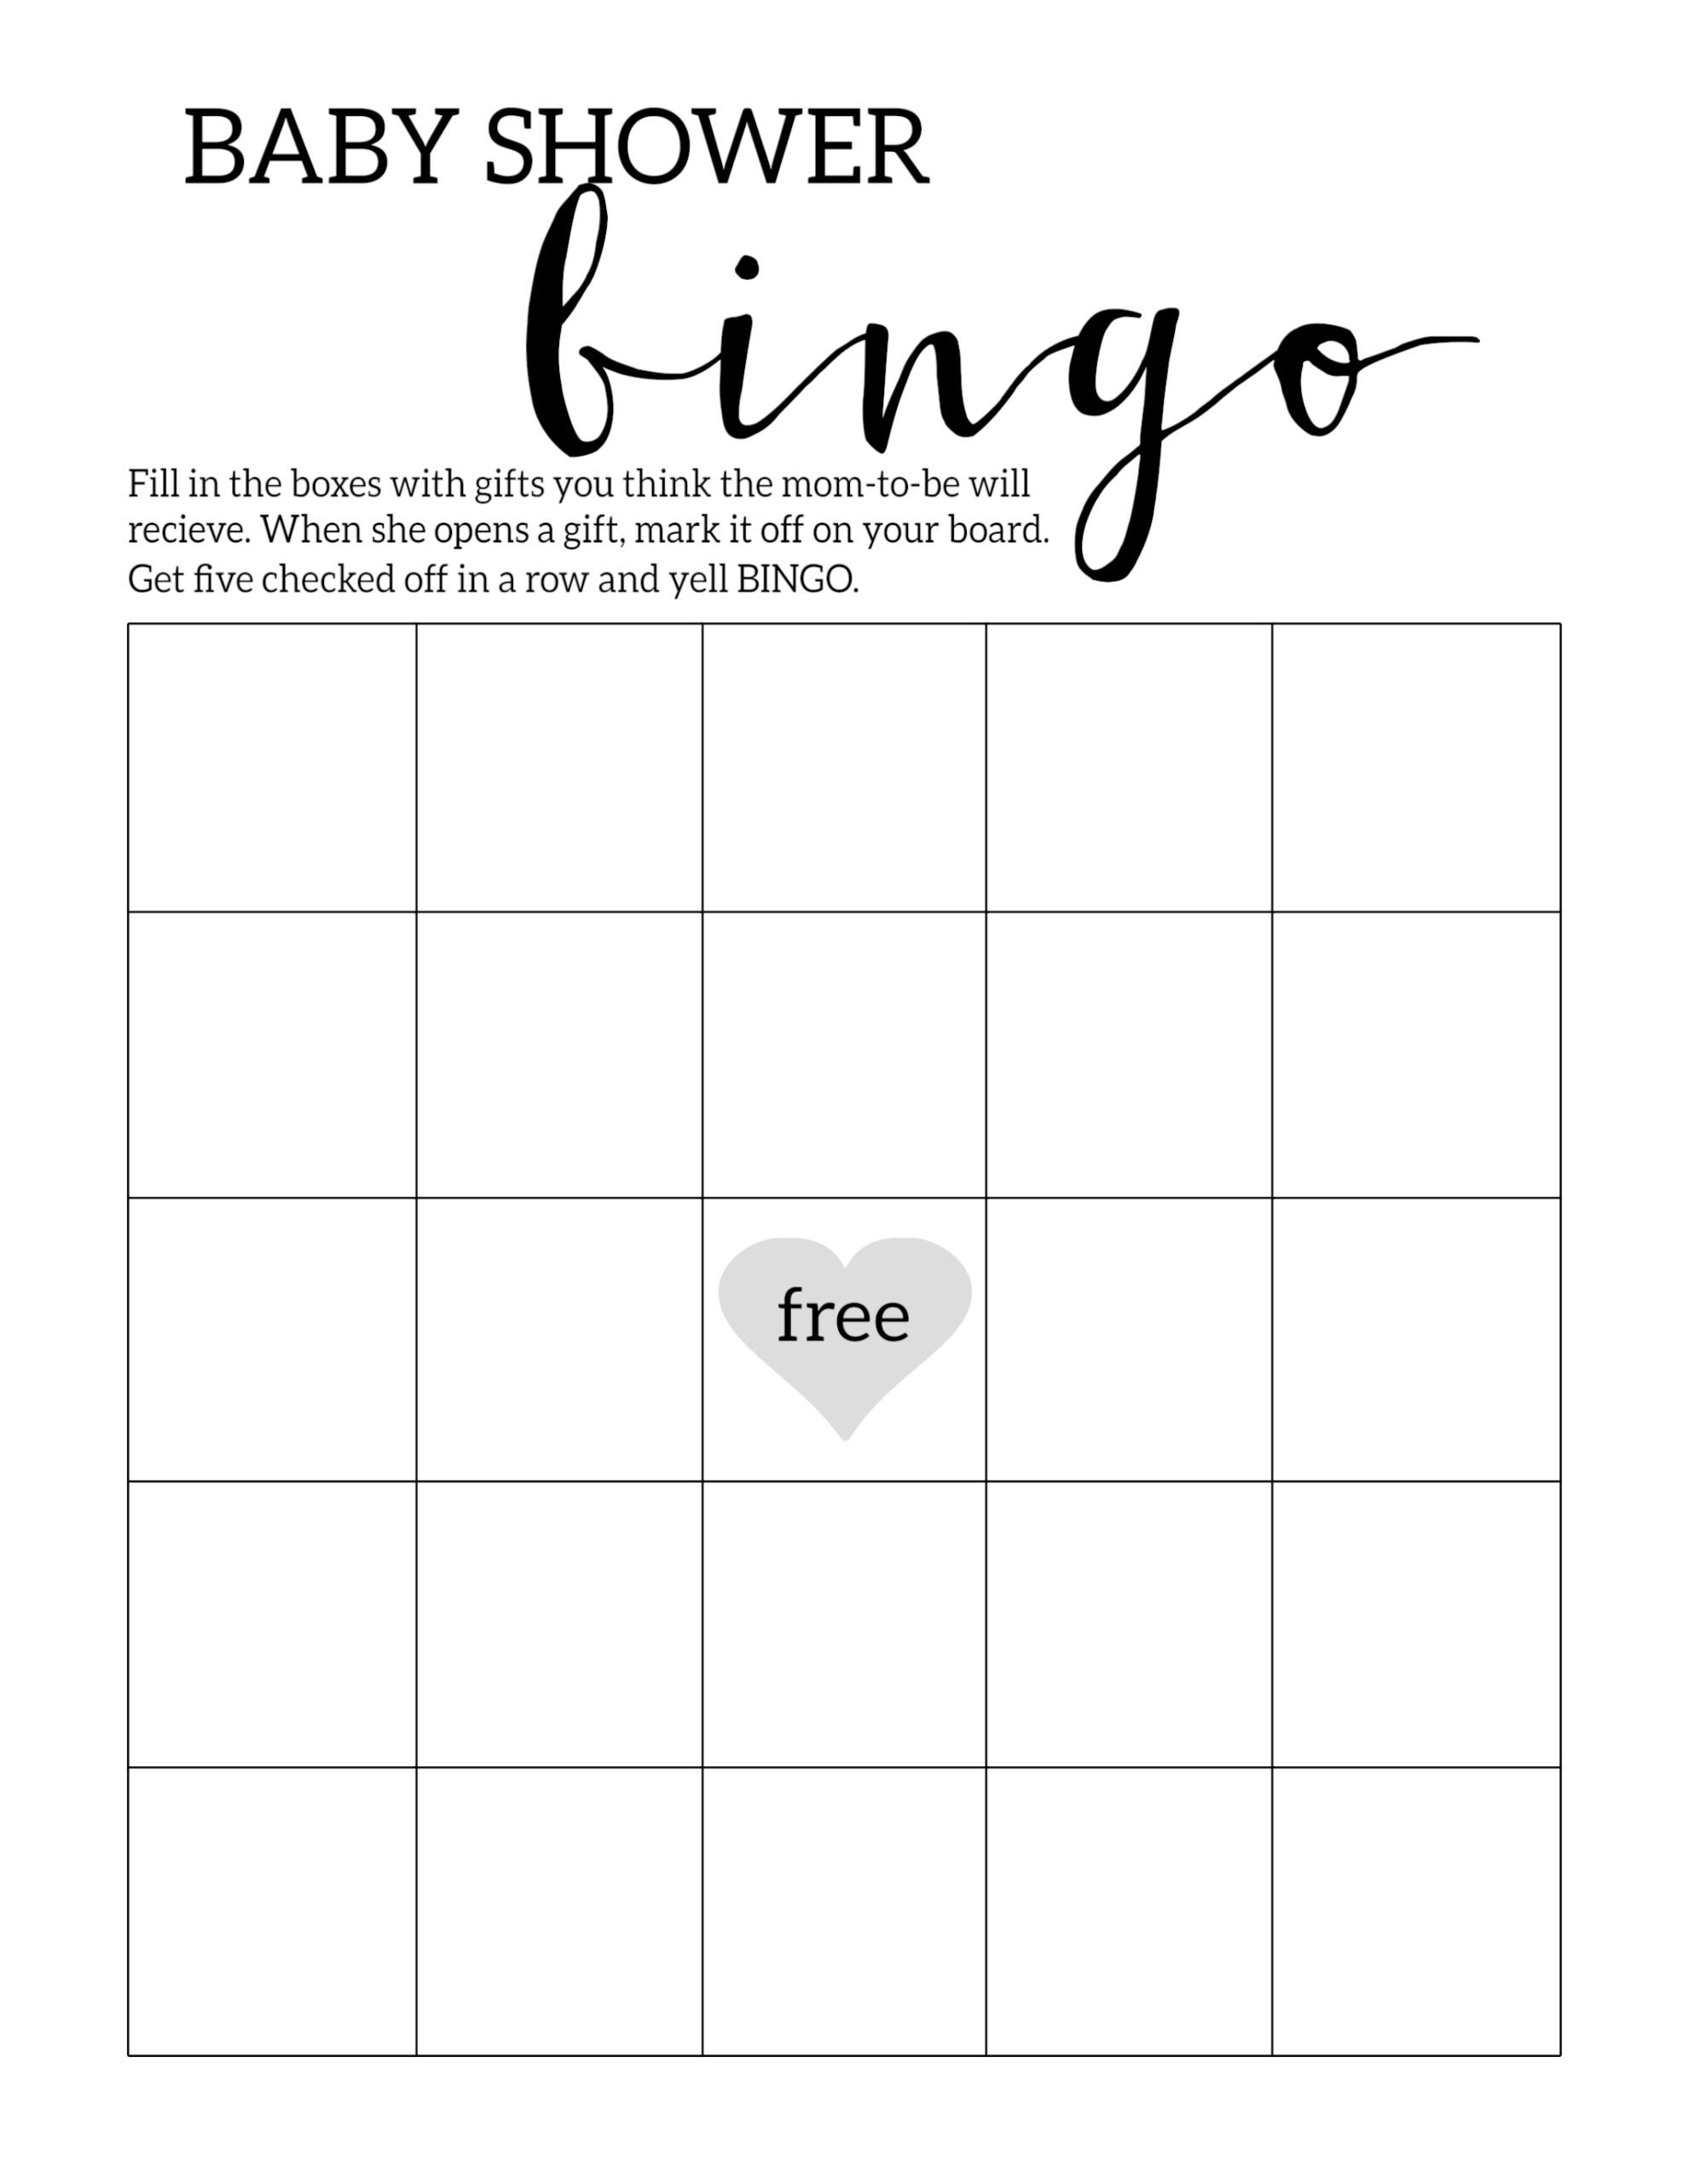 Baby Shower Bingo Printable Cards Template - Paper Trail Design - Printable Baby Shower Bingo Games Free